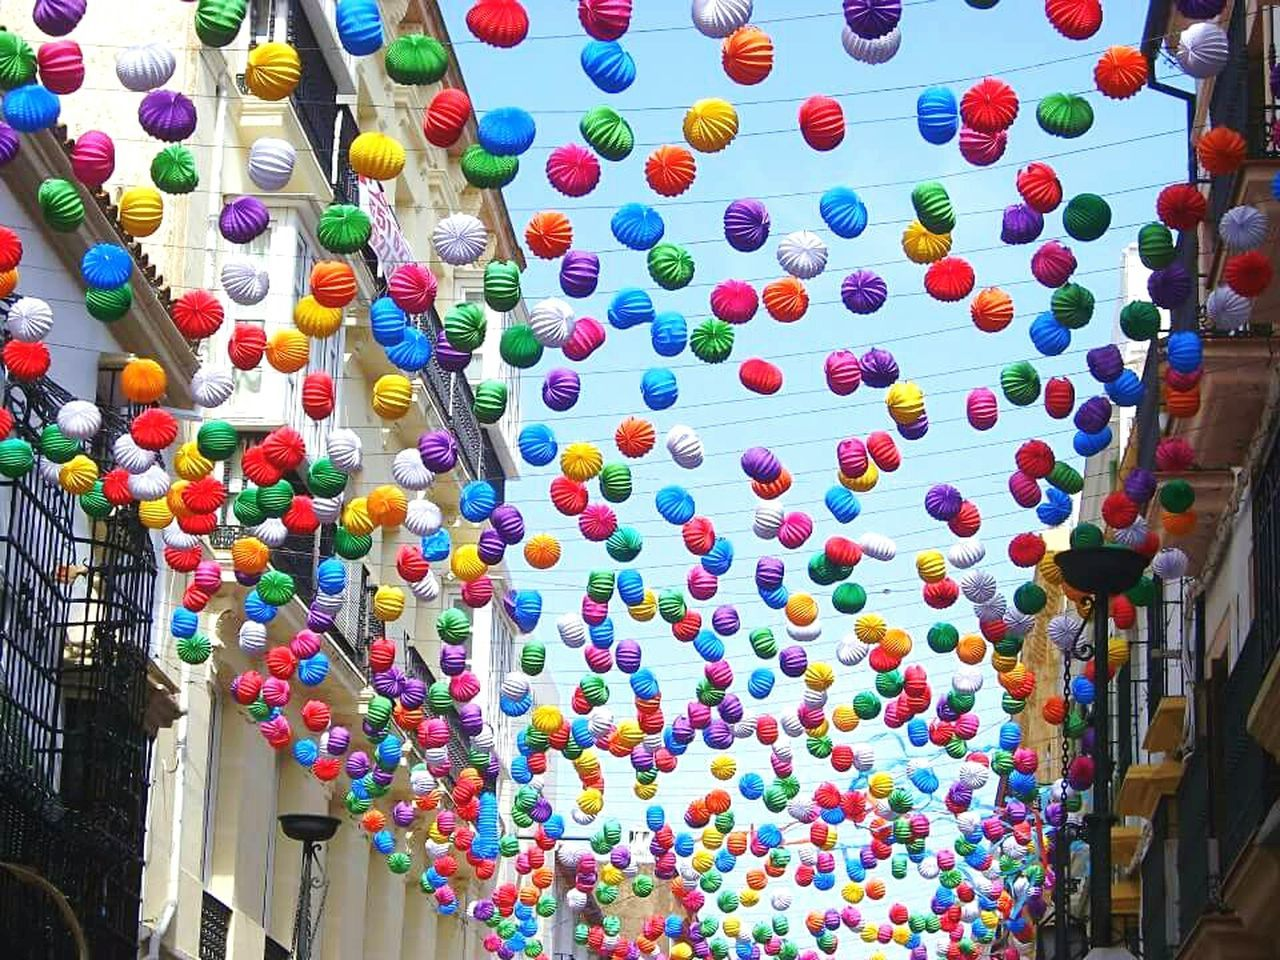 Multi Colored Architecture Low Angle View Hanging Built Structure Lantern Building Exterior Variation Colorful Large Group Of Objects In A Row Outdoors Sky Day No People Decoration Place Of Worship Cloud - Sky High Section Tourism Andalucia, Spain Andalucía Ronda Spain